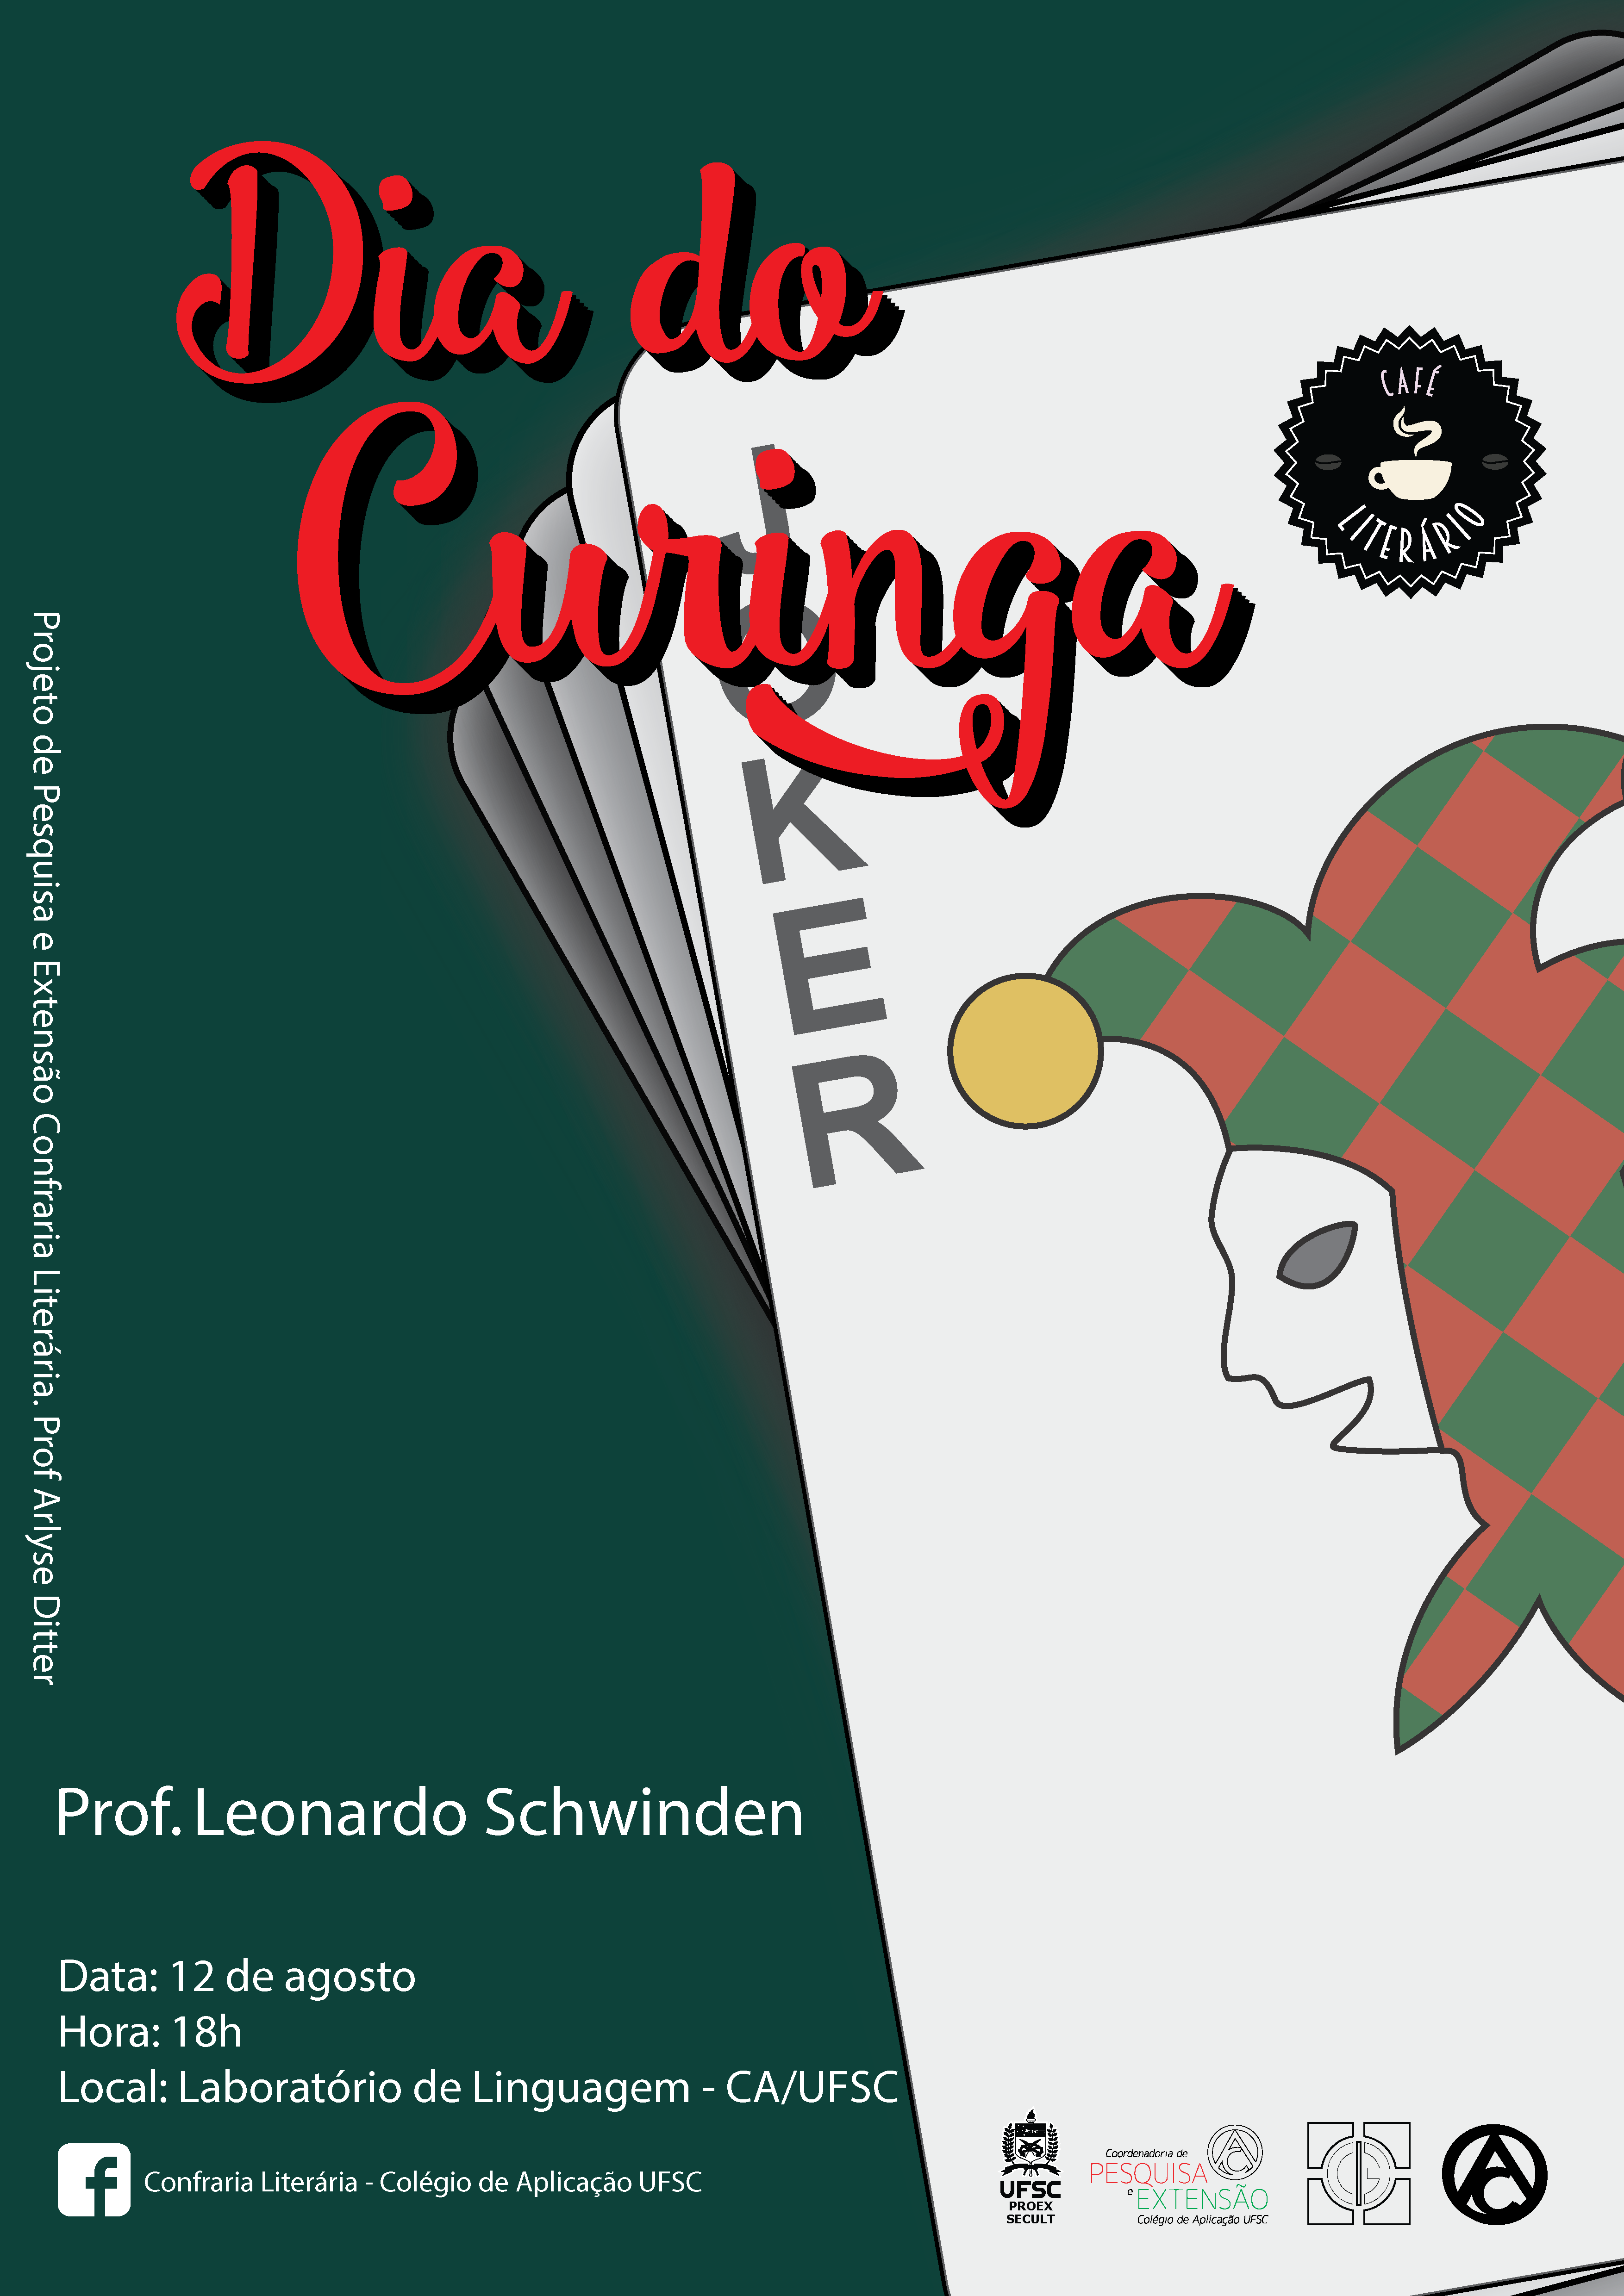 Dia do Curinga - Cartaz-01